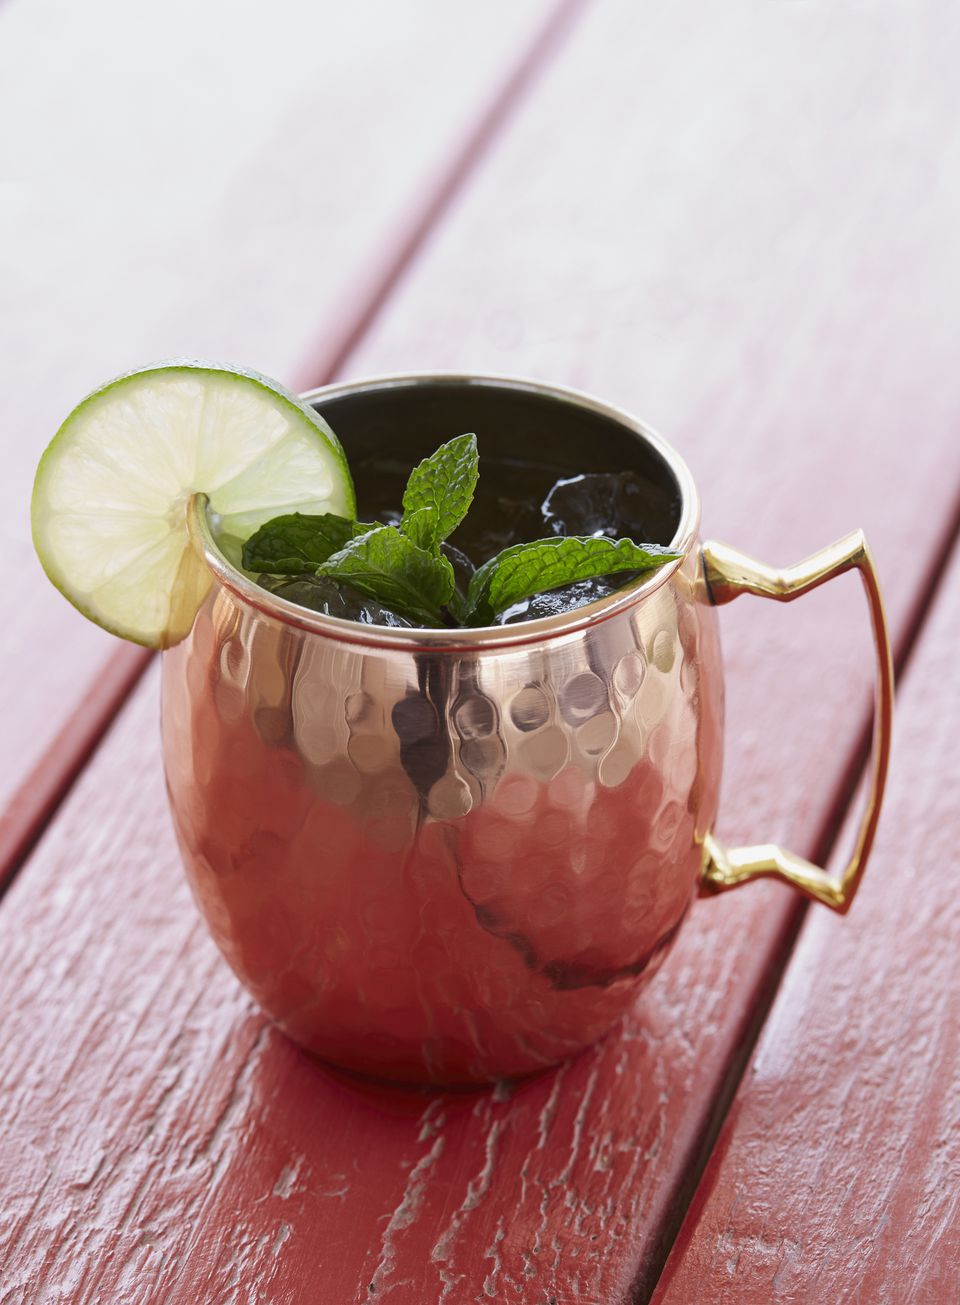 Moscow mule cocktail in silver mug